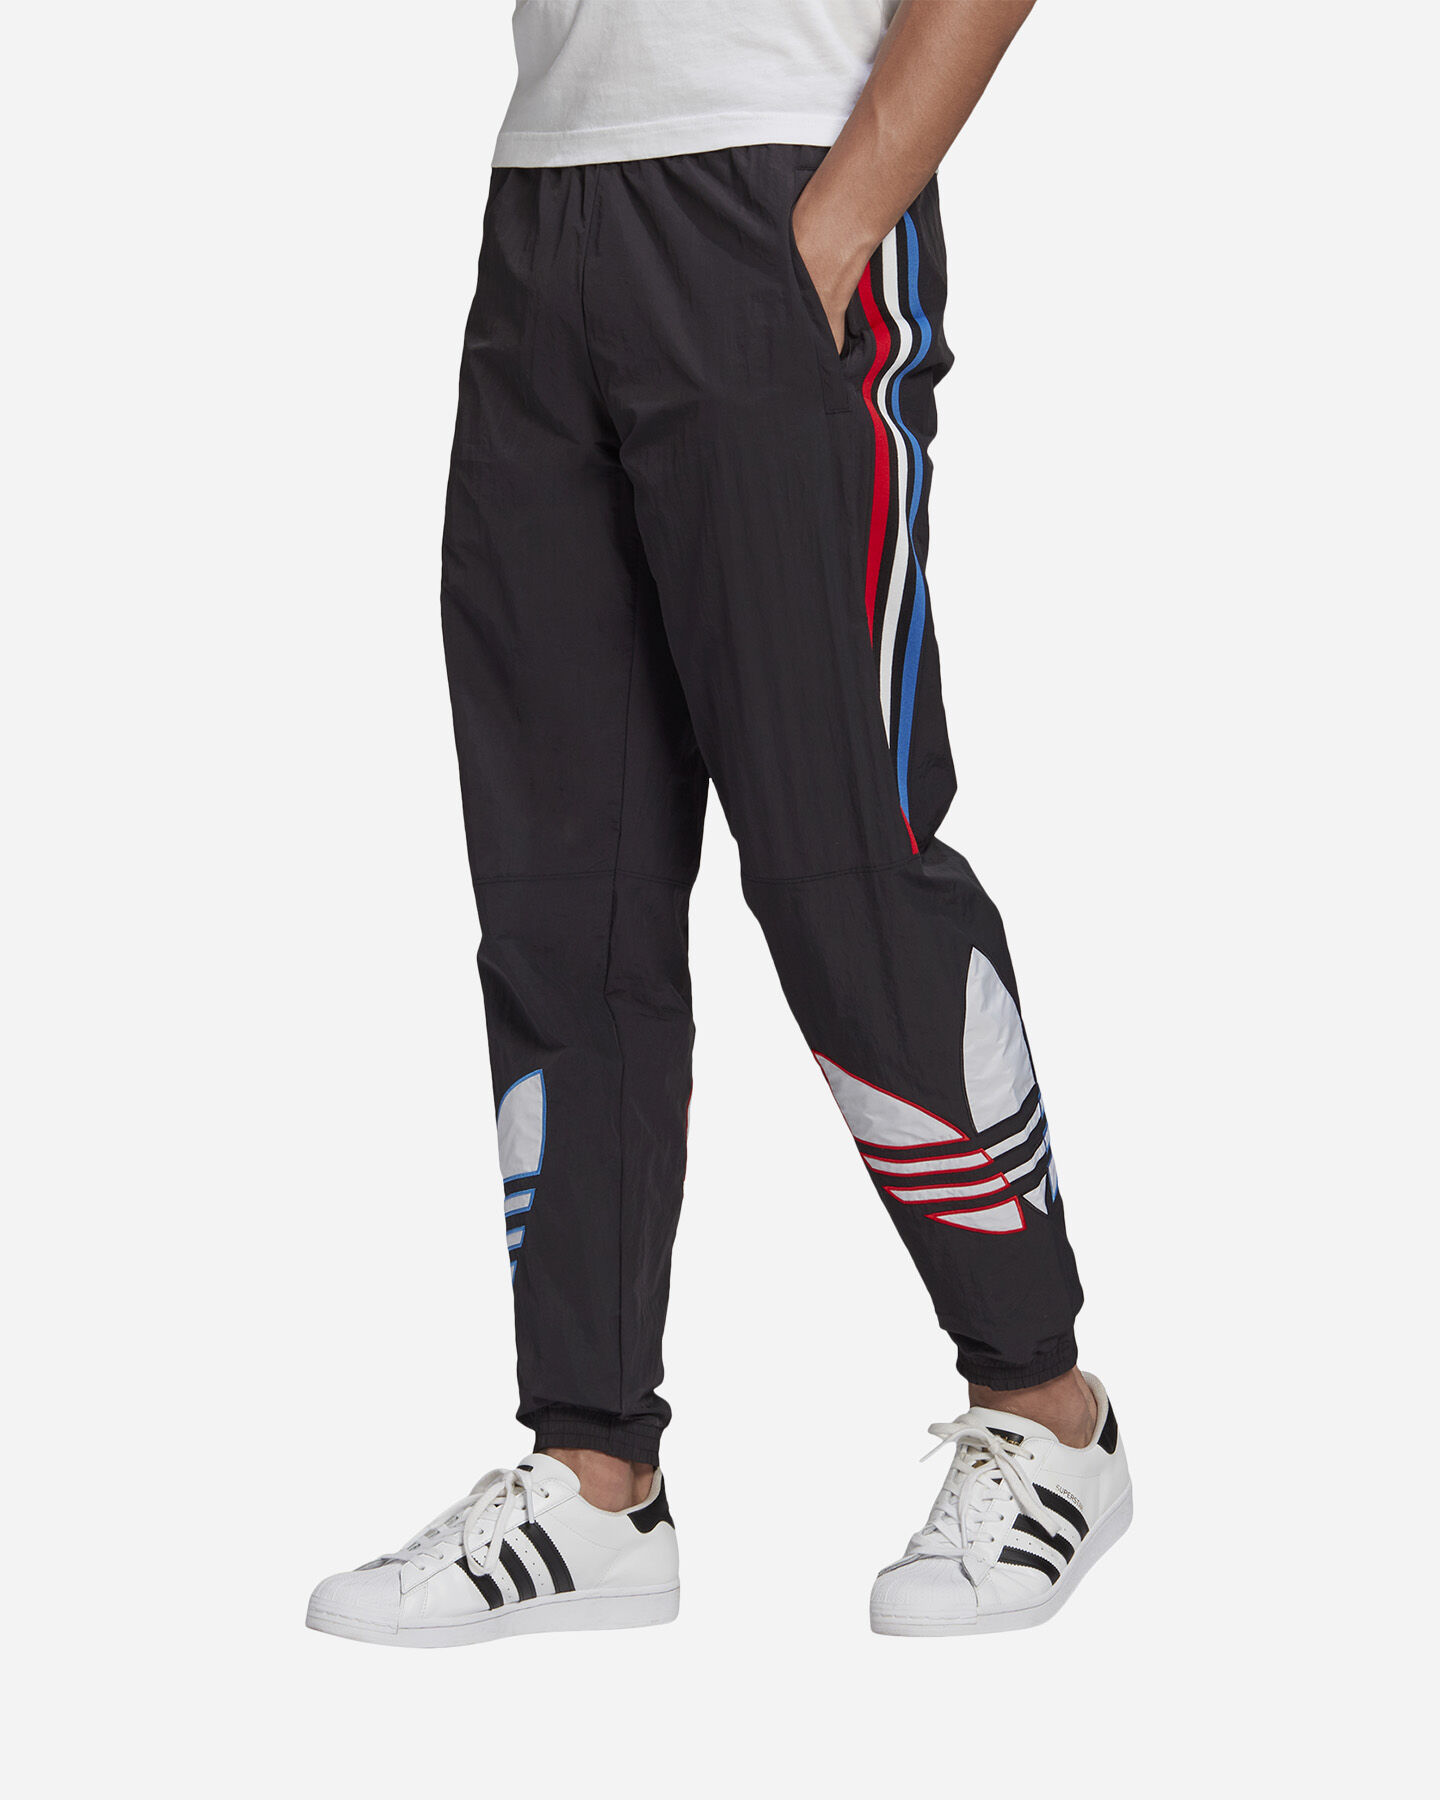 Pantalone ADIDAS SPACE RACE M S5271413 scatto 1